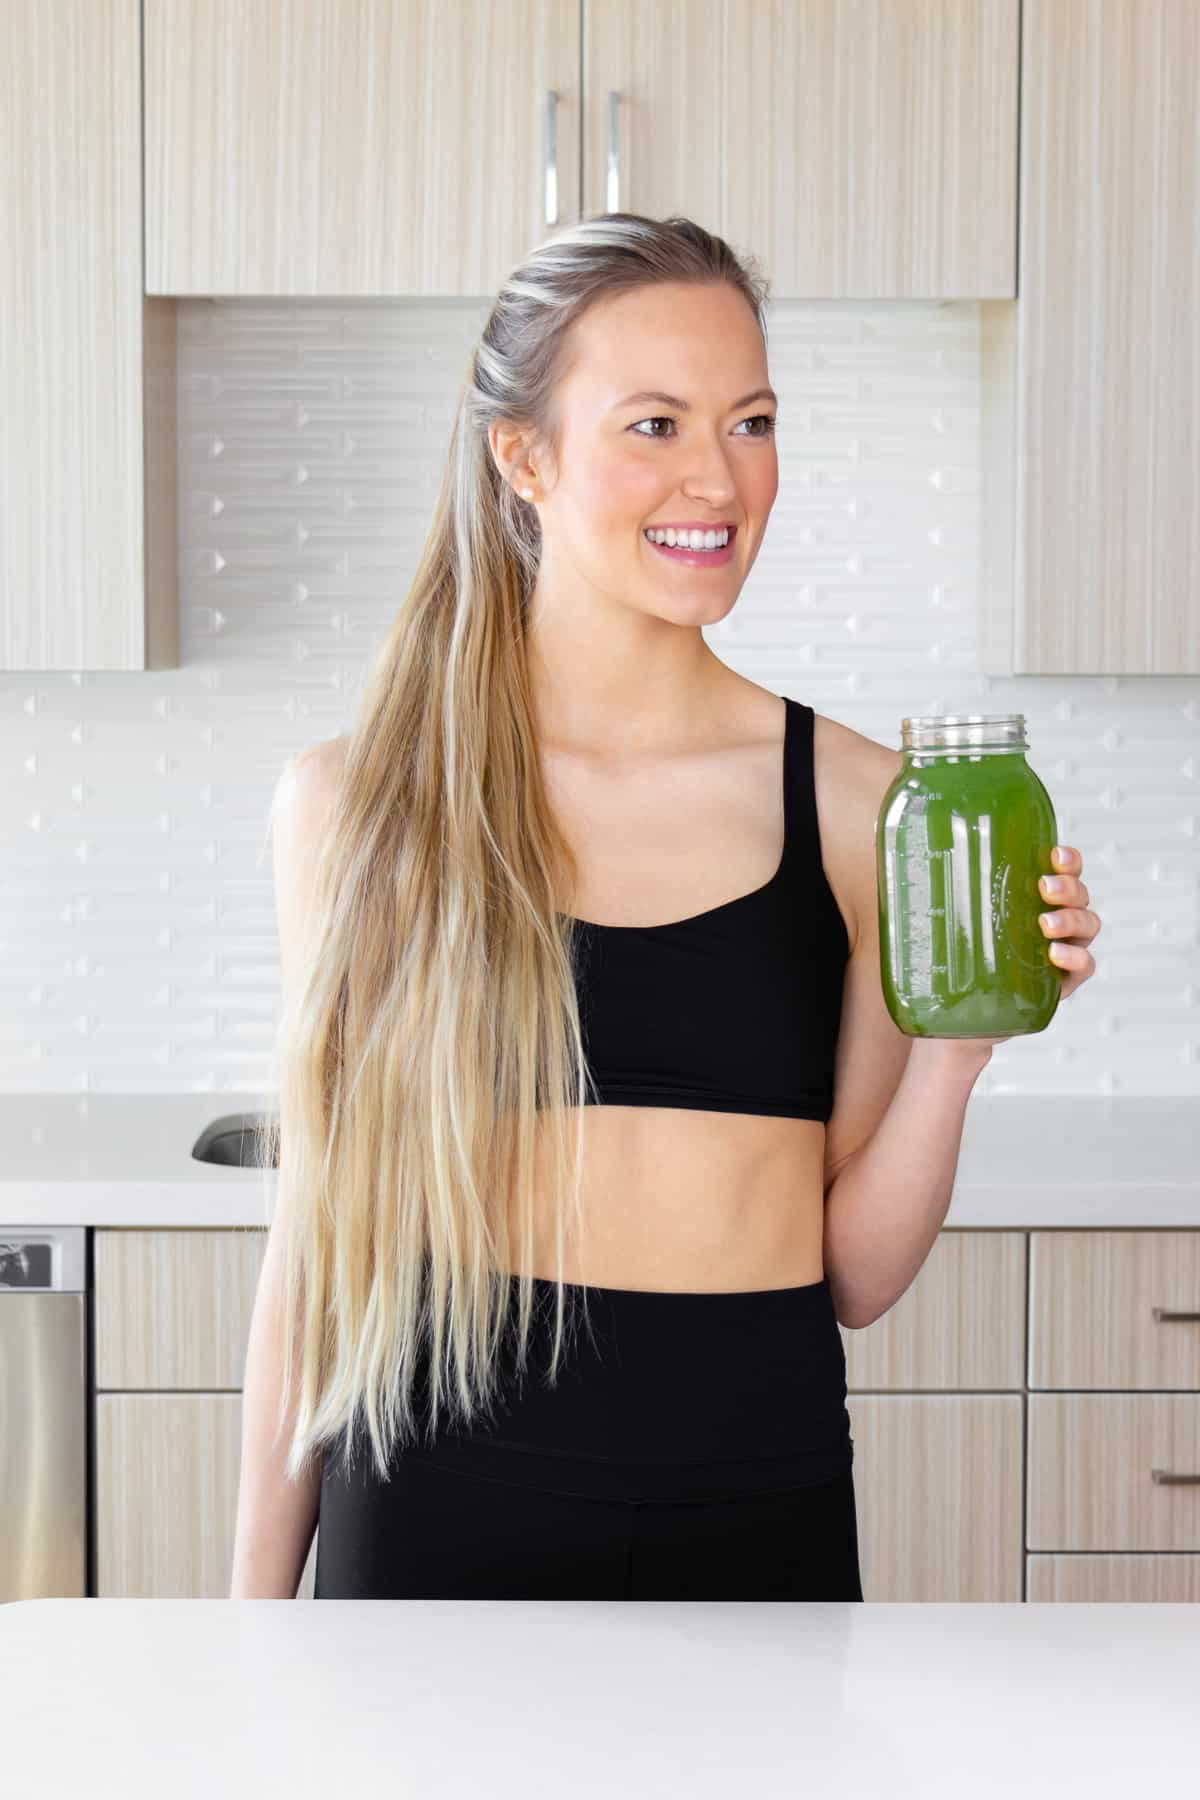 kaylie wearing activewear while holding a mason jar filled with green juice in the kitchen